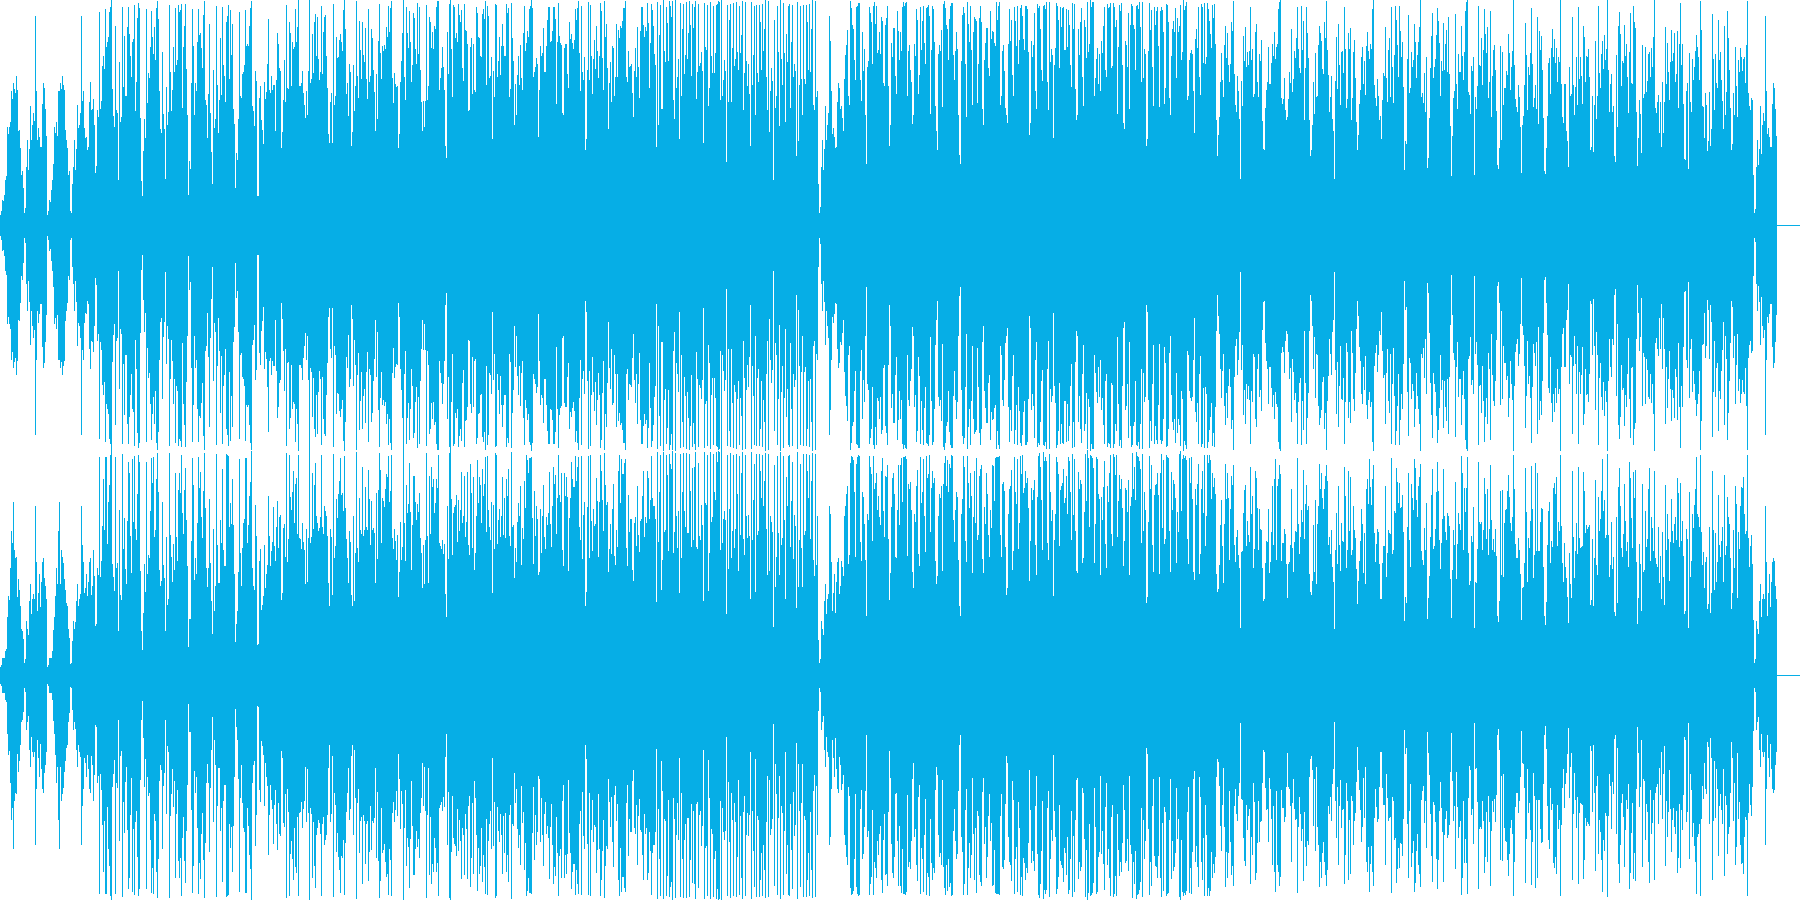 House music with a mysterious atmosphere's reproduced waveform